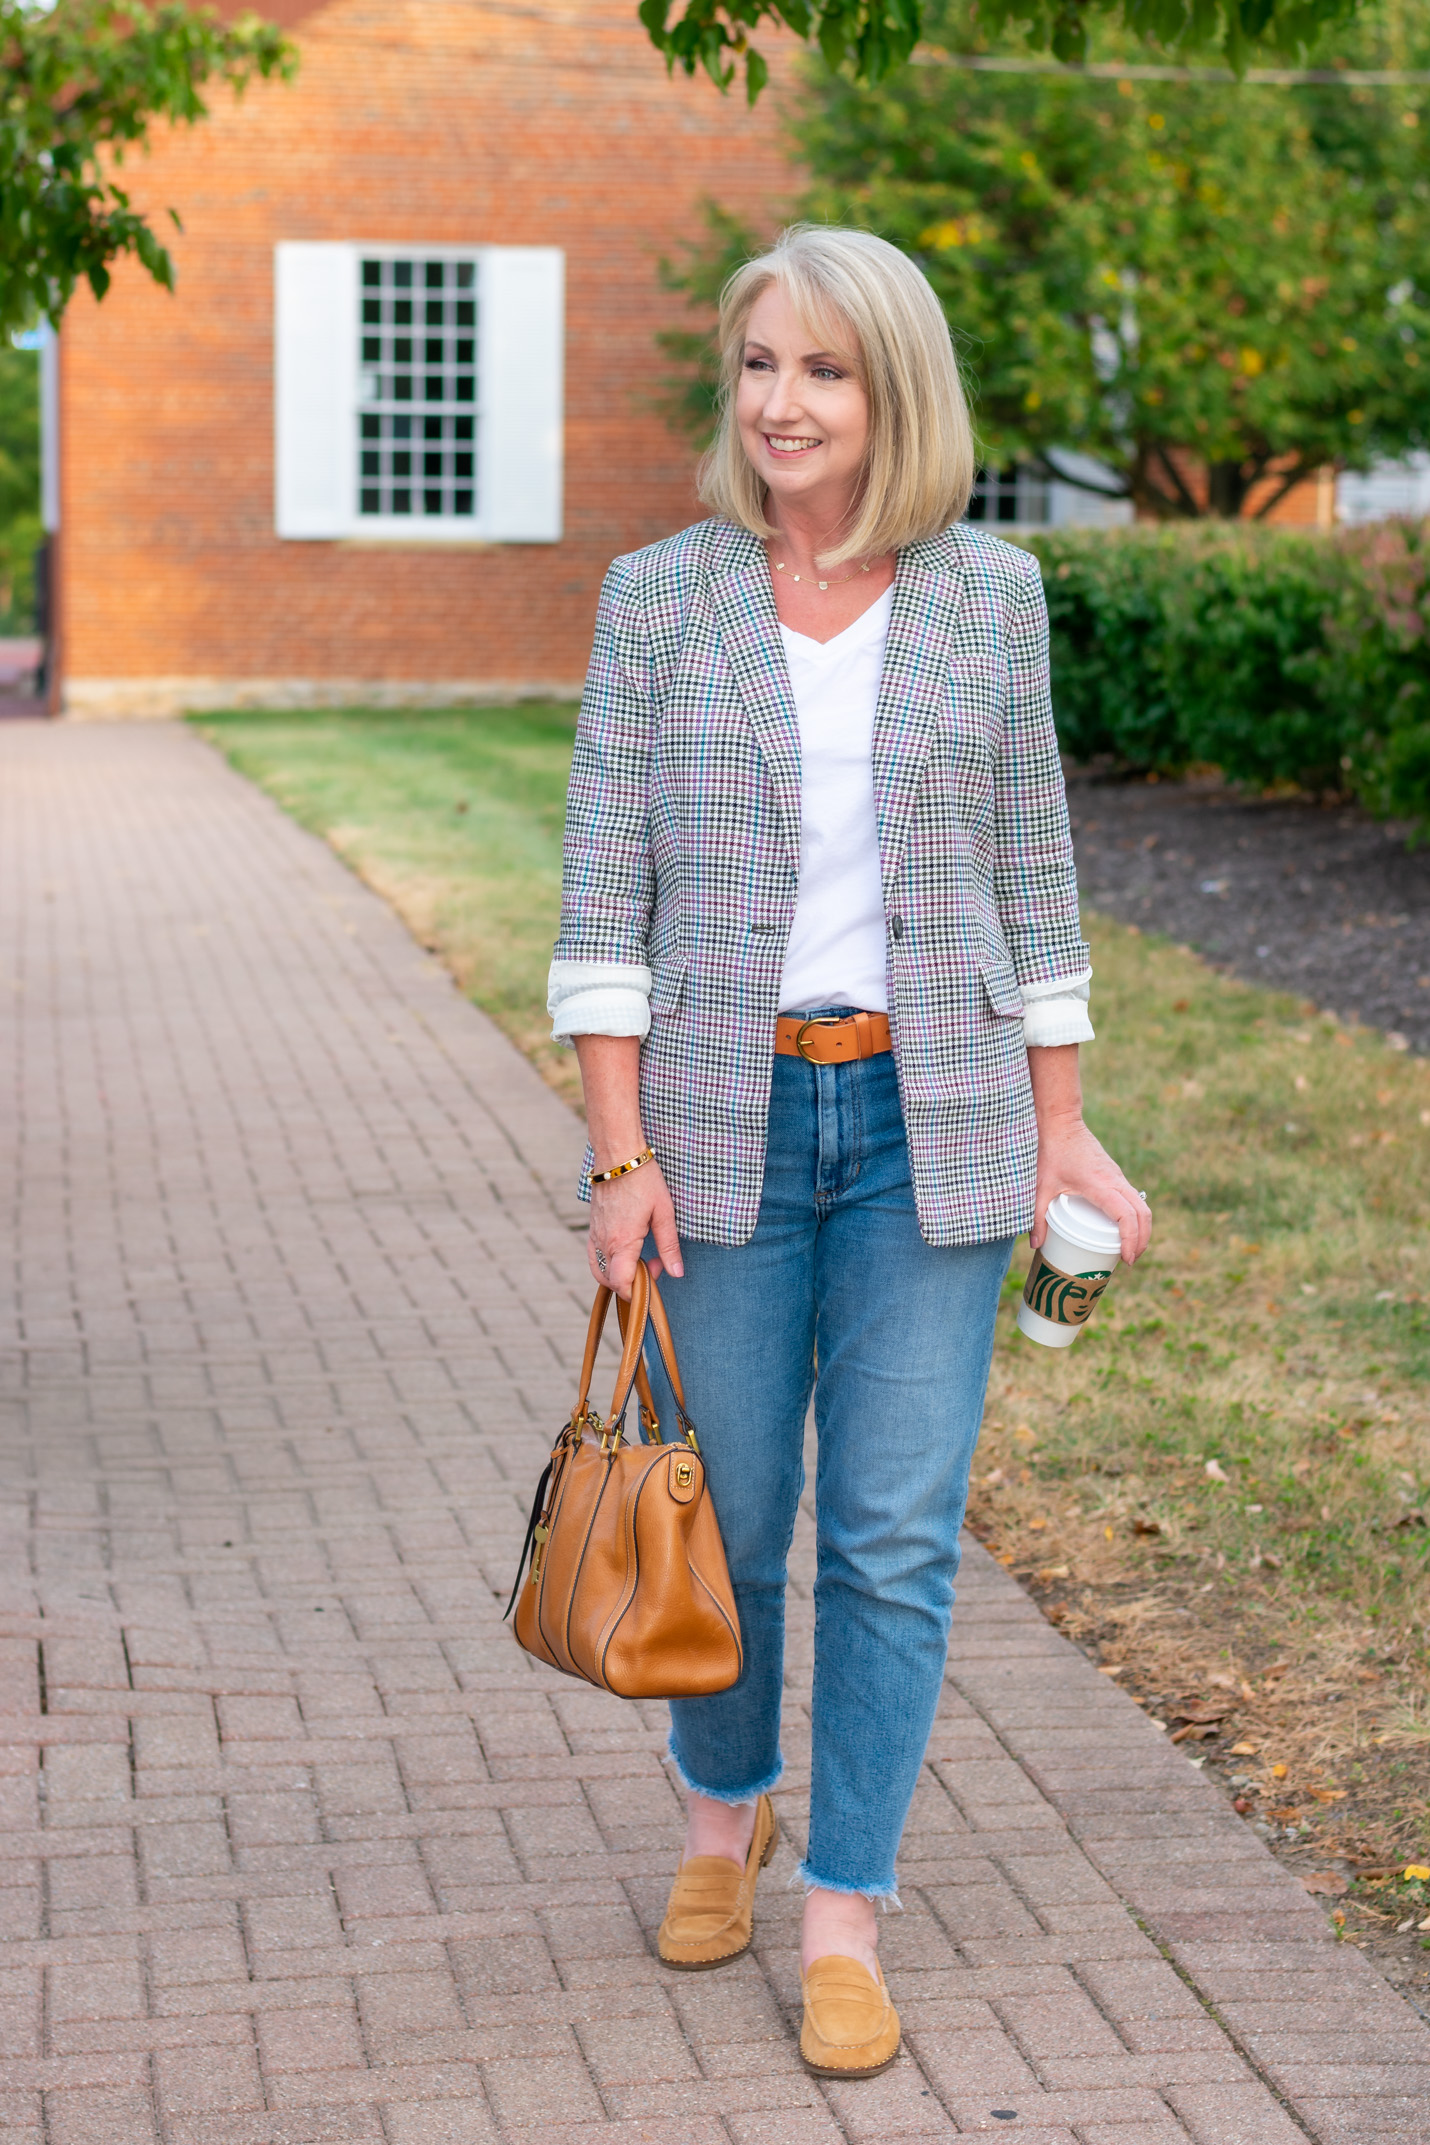 The Most Modern Way to Wear Your Blazer